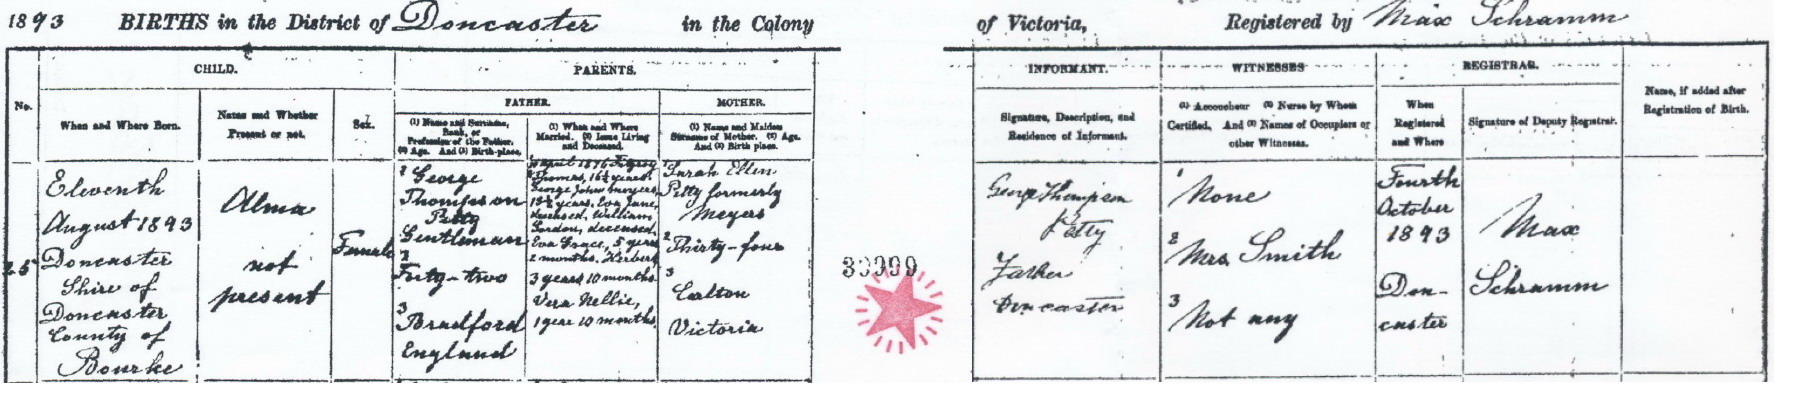 Alma Petty birth certificate